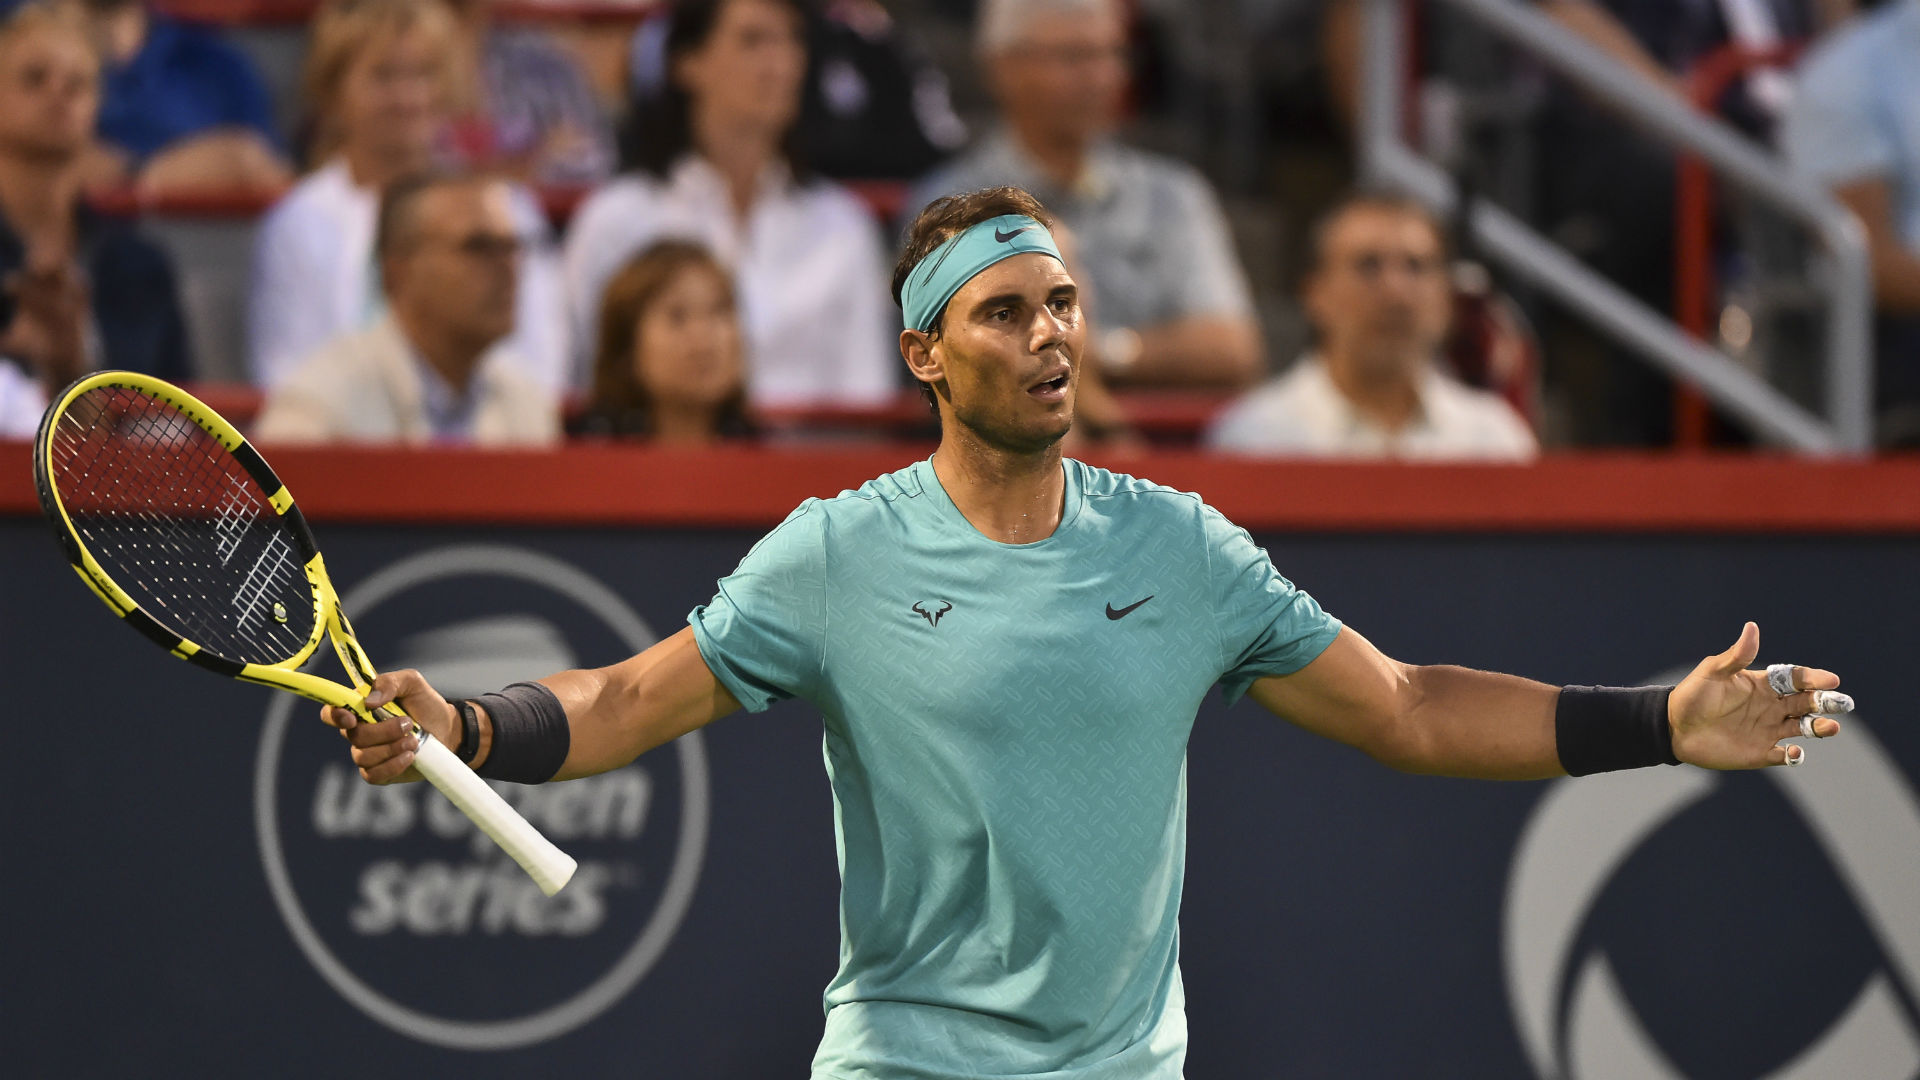 Rafael Nadal cannot meet Novak Djokovic or Roger Federer until the US Open final, but he does not believe that is a definite advantage.